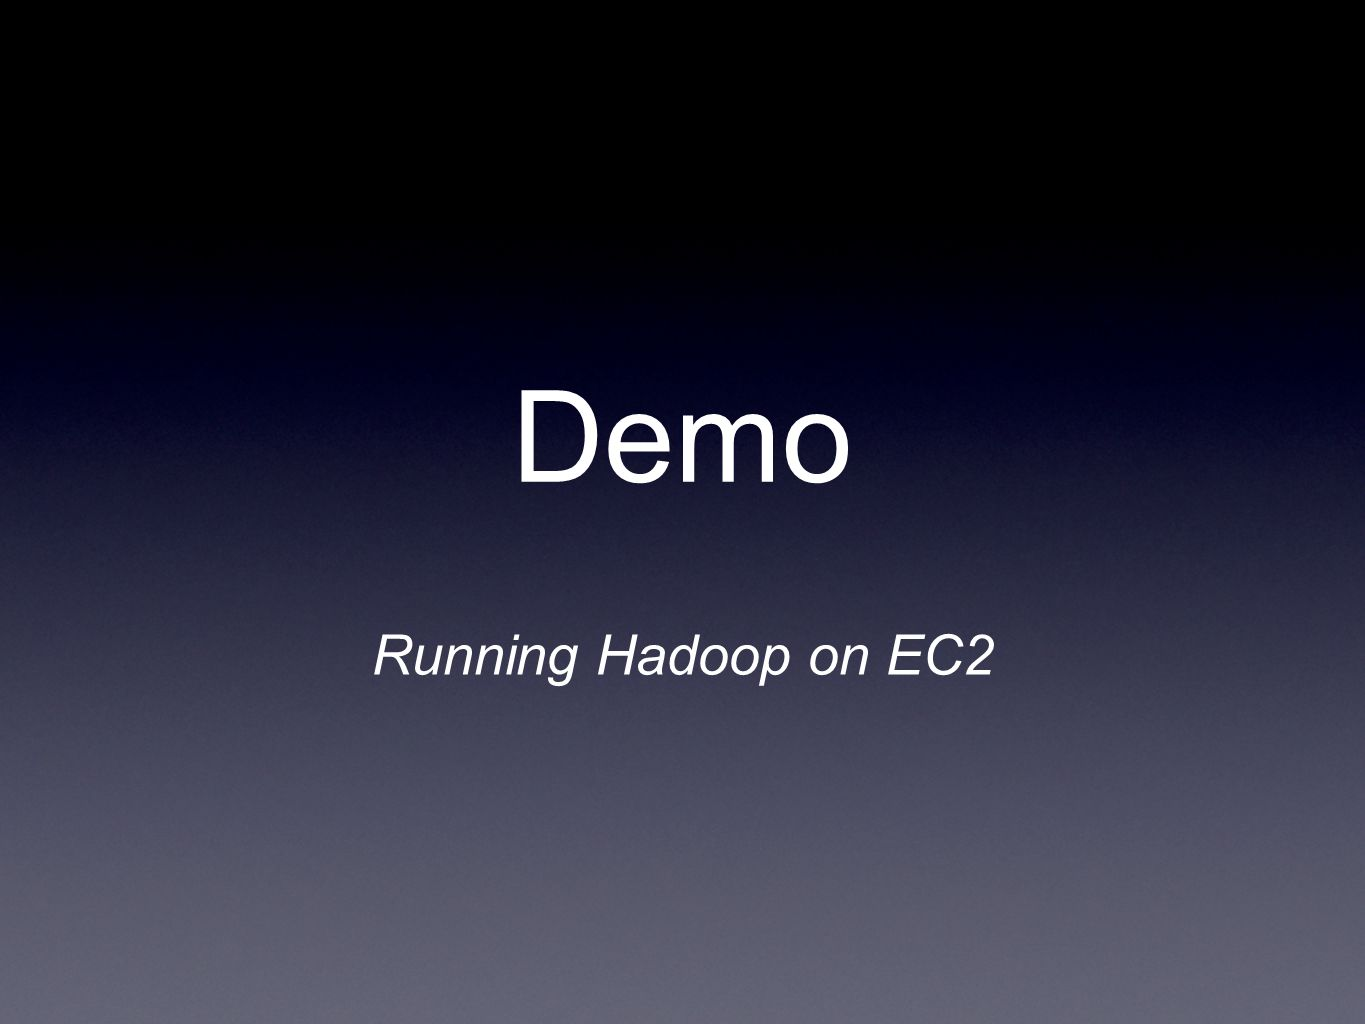 Running Hadoop on EC2